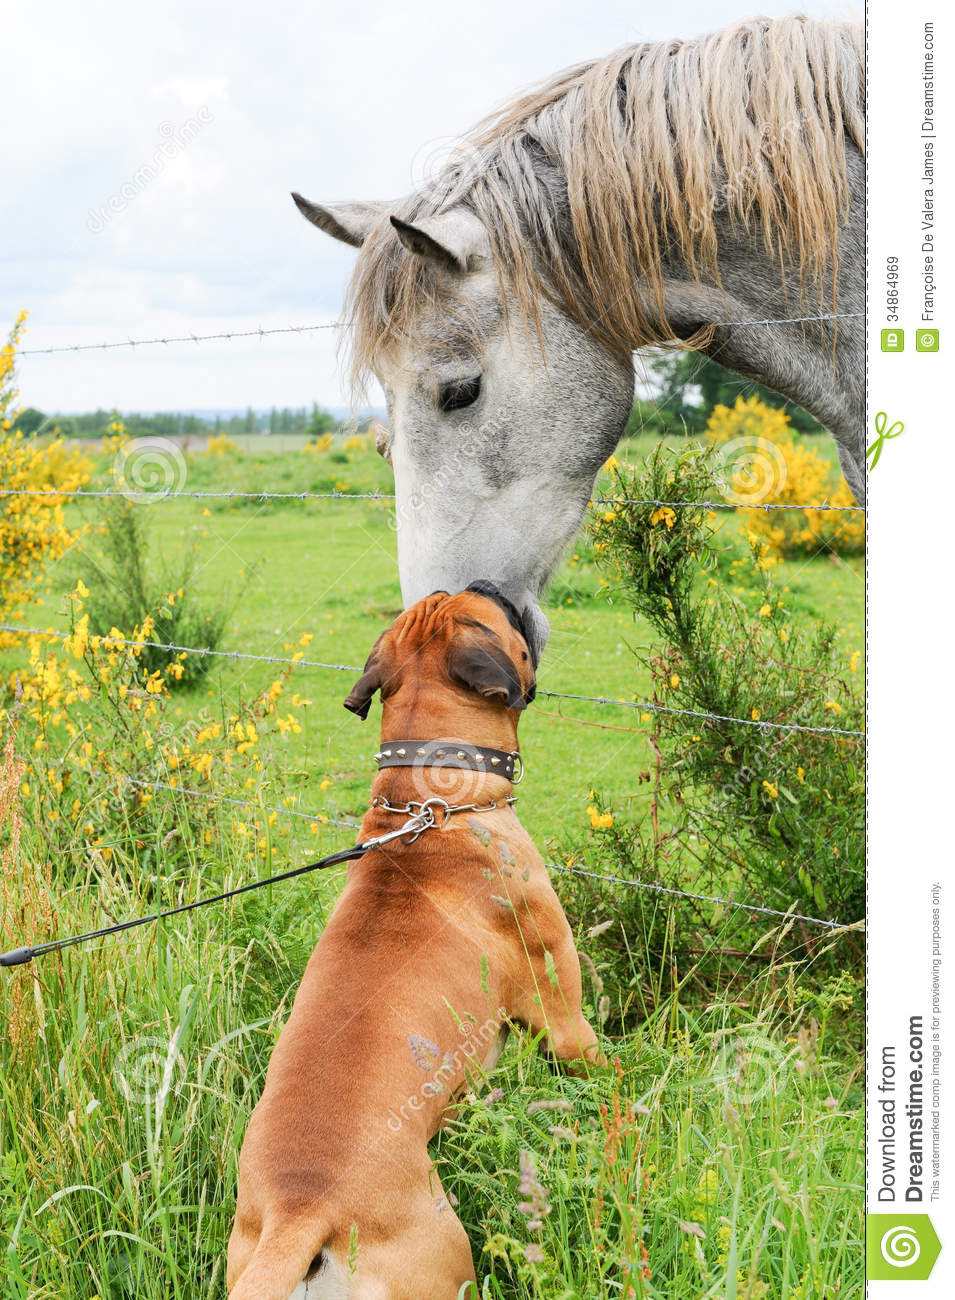 Royalty Free Stock Images Boxer Dog Making Friends Horse Purebred Leash Countryside Image34864969 moreover Store Categories Ministry Sets 666100 further Portable Puppet Theater besides Childrens Worshiptheatre Set moreover 11 Manualidades Que Puedes Hacer Con Palitos De Paleta. on puppet house plans